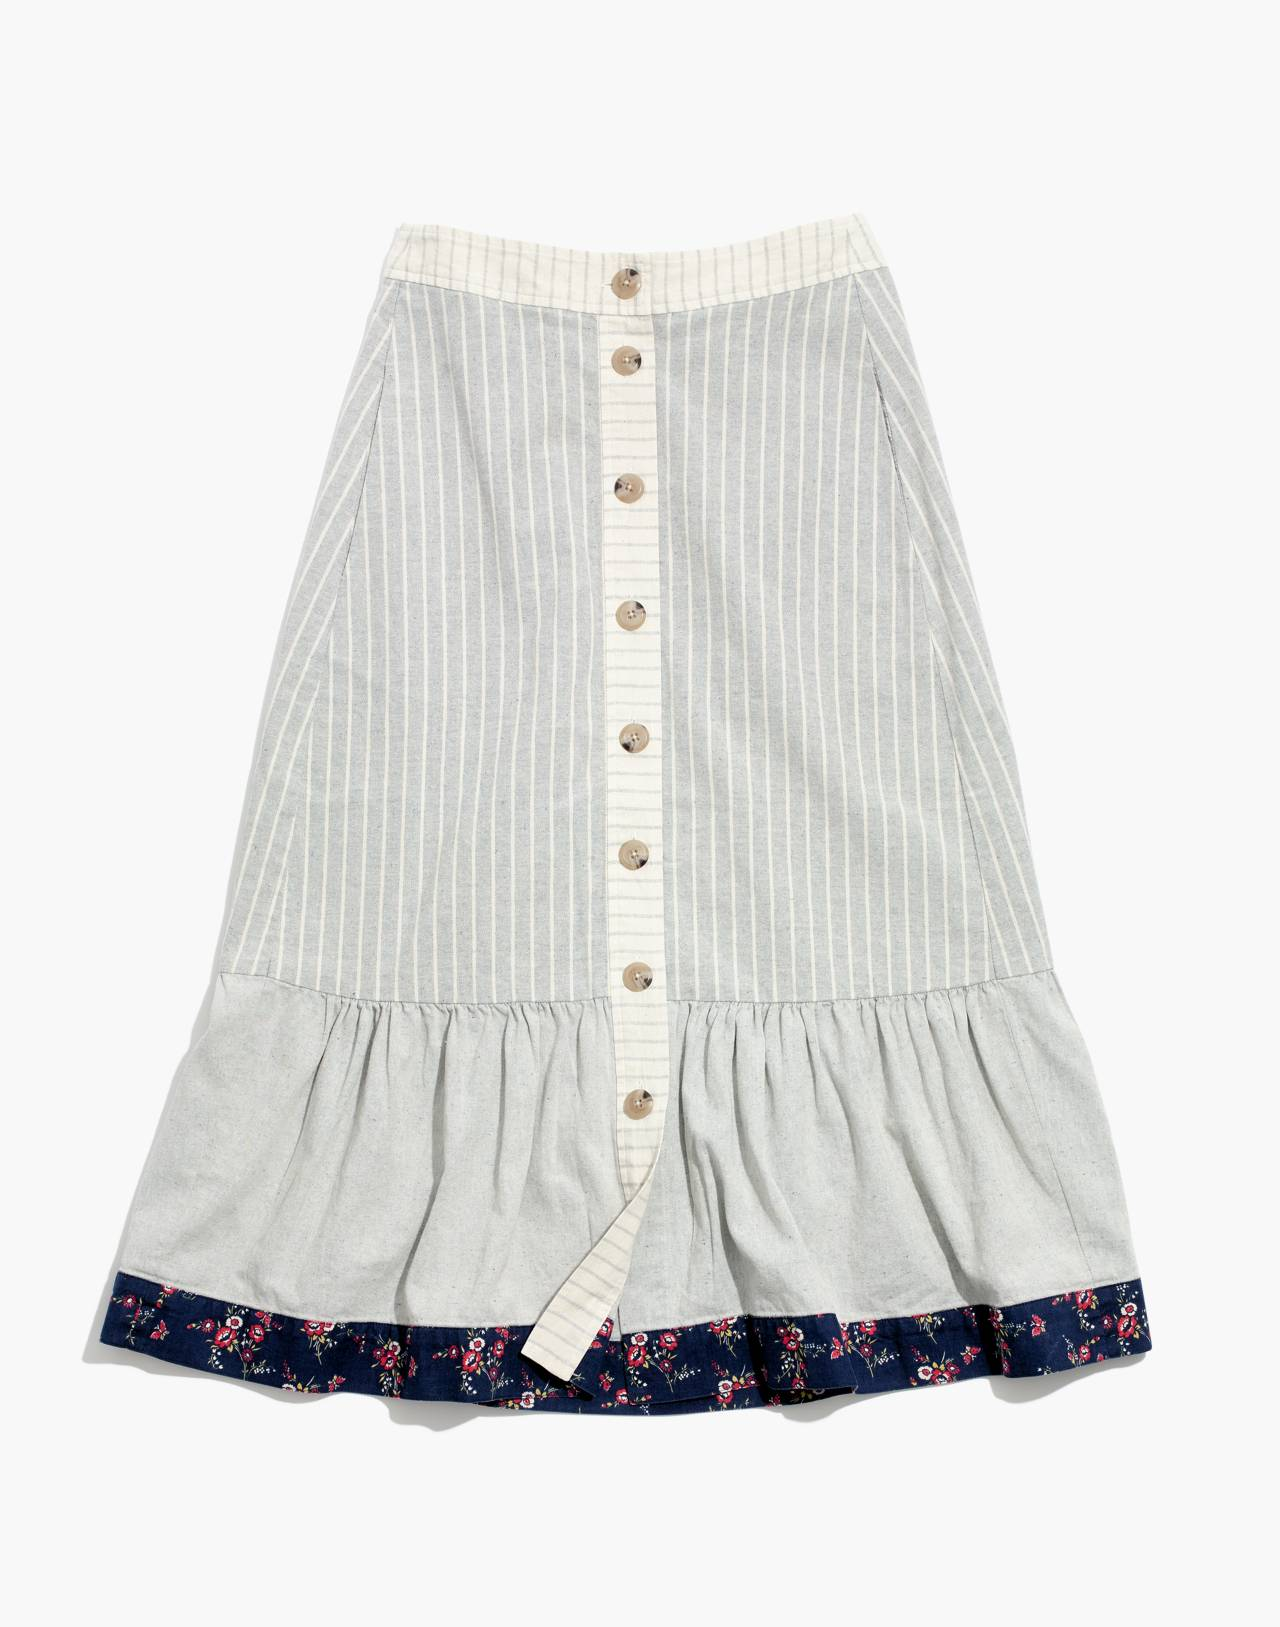 Madewell x The New Denim Project Patchwork Skirt in white skinny stripe image 4